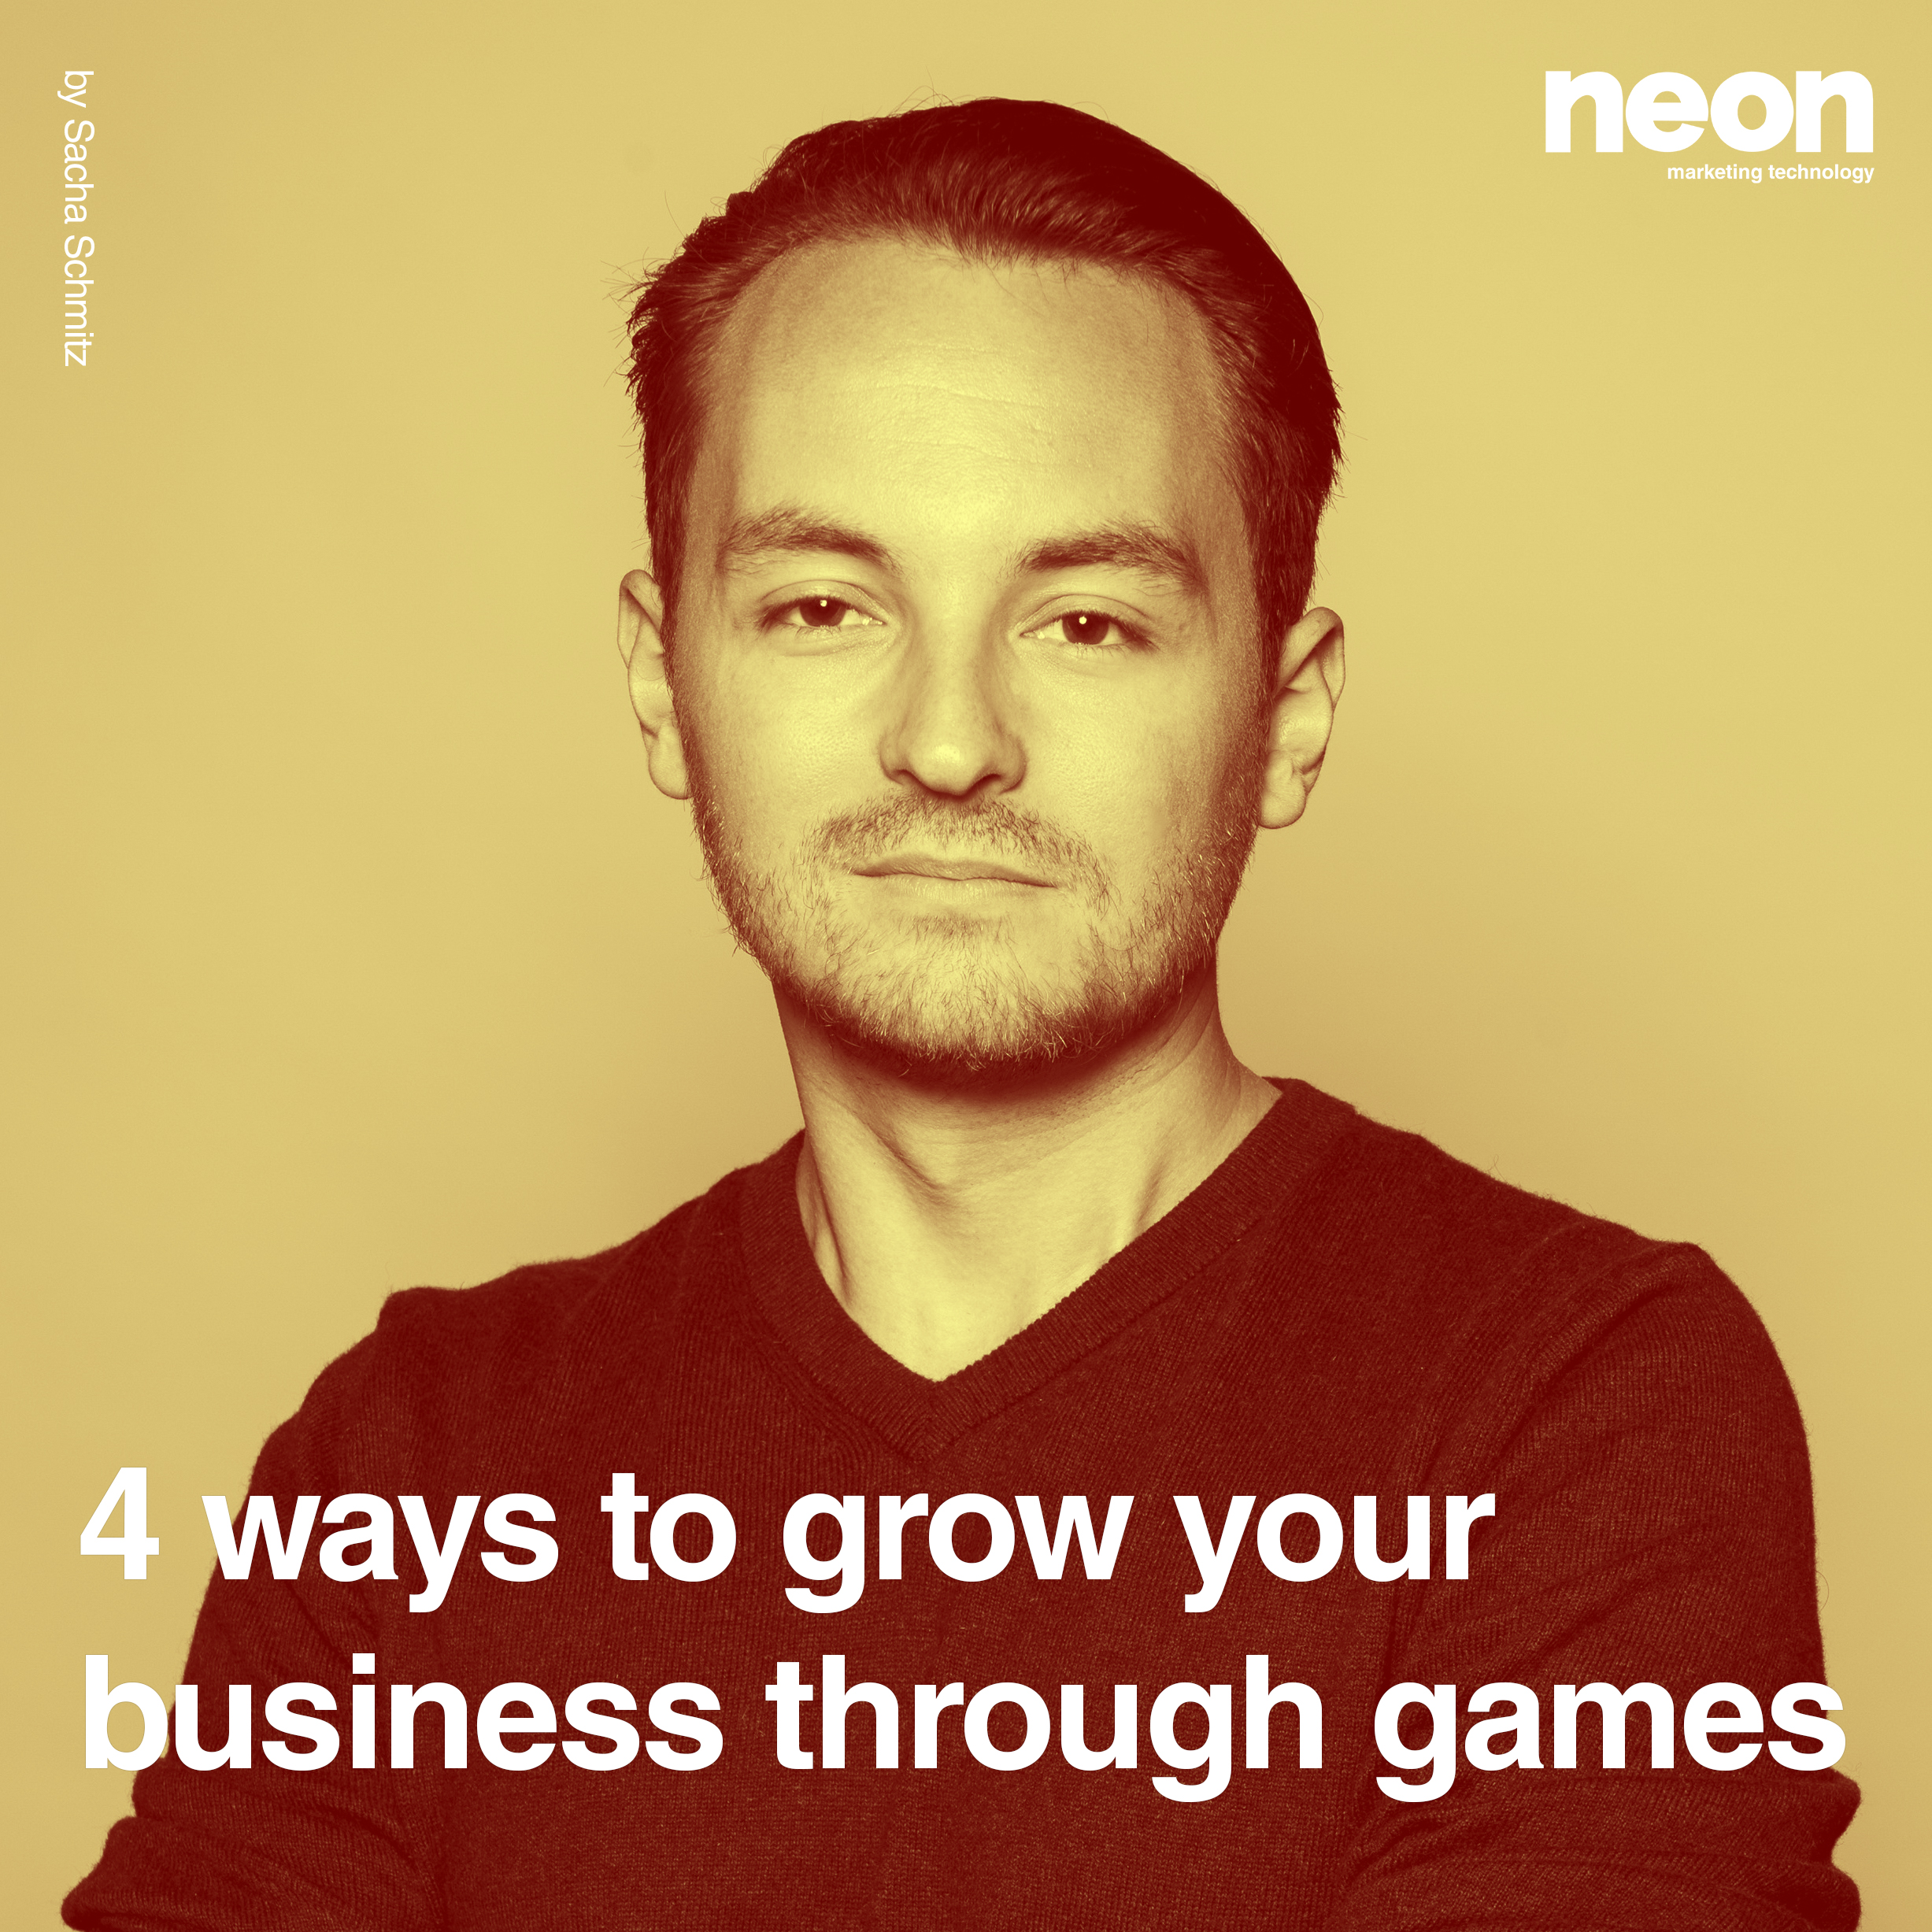 4 ways to grow your business through games